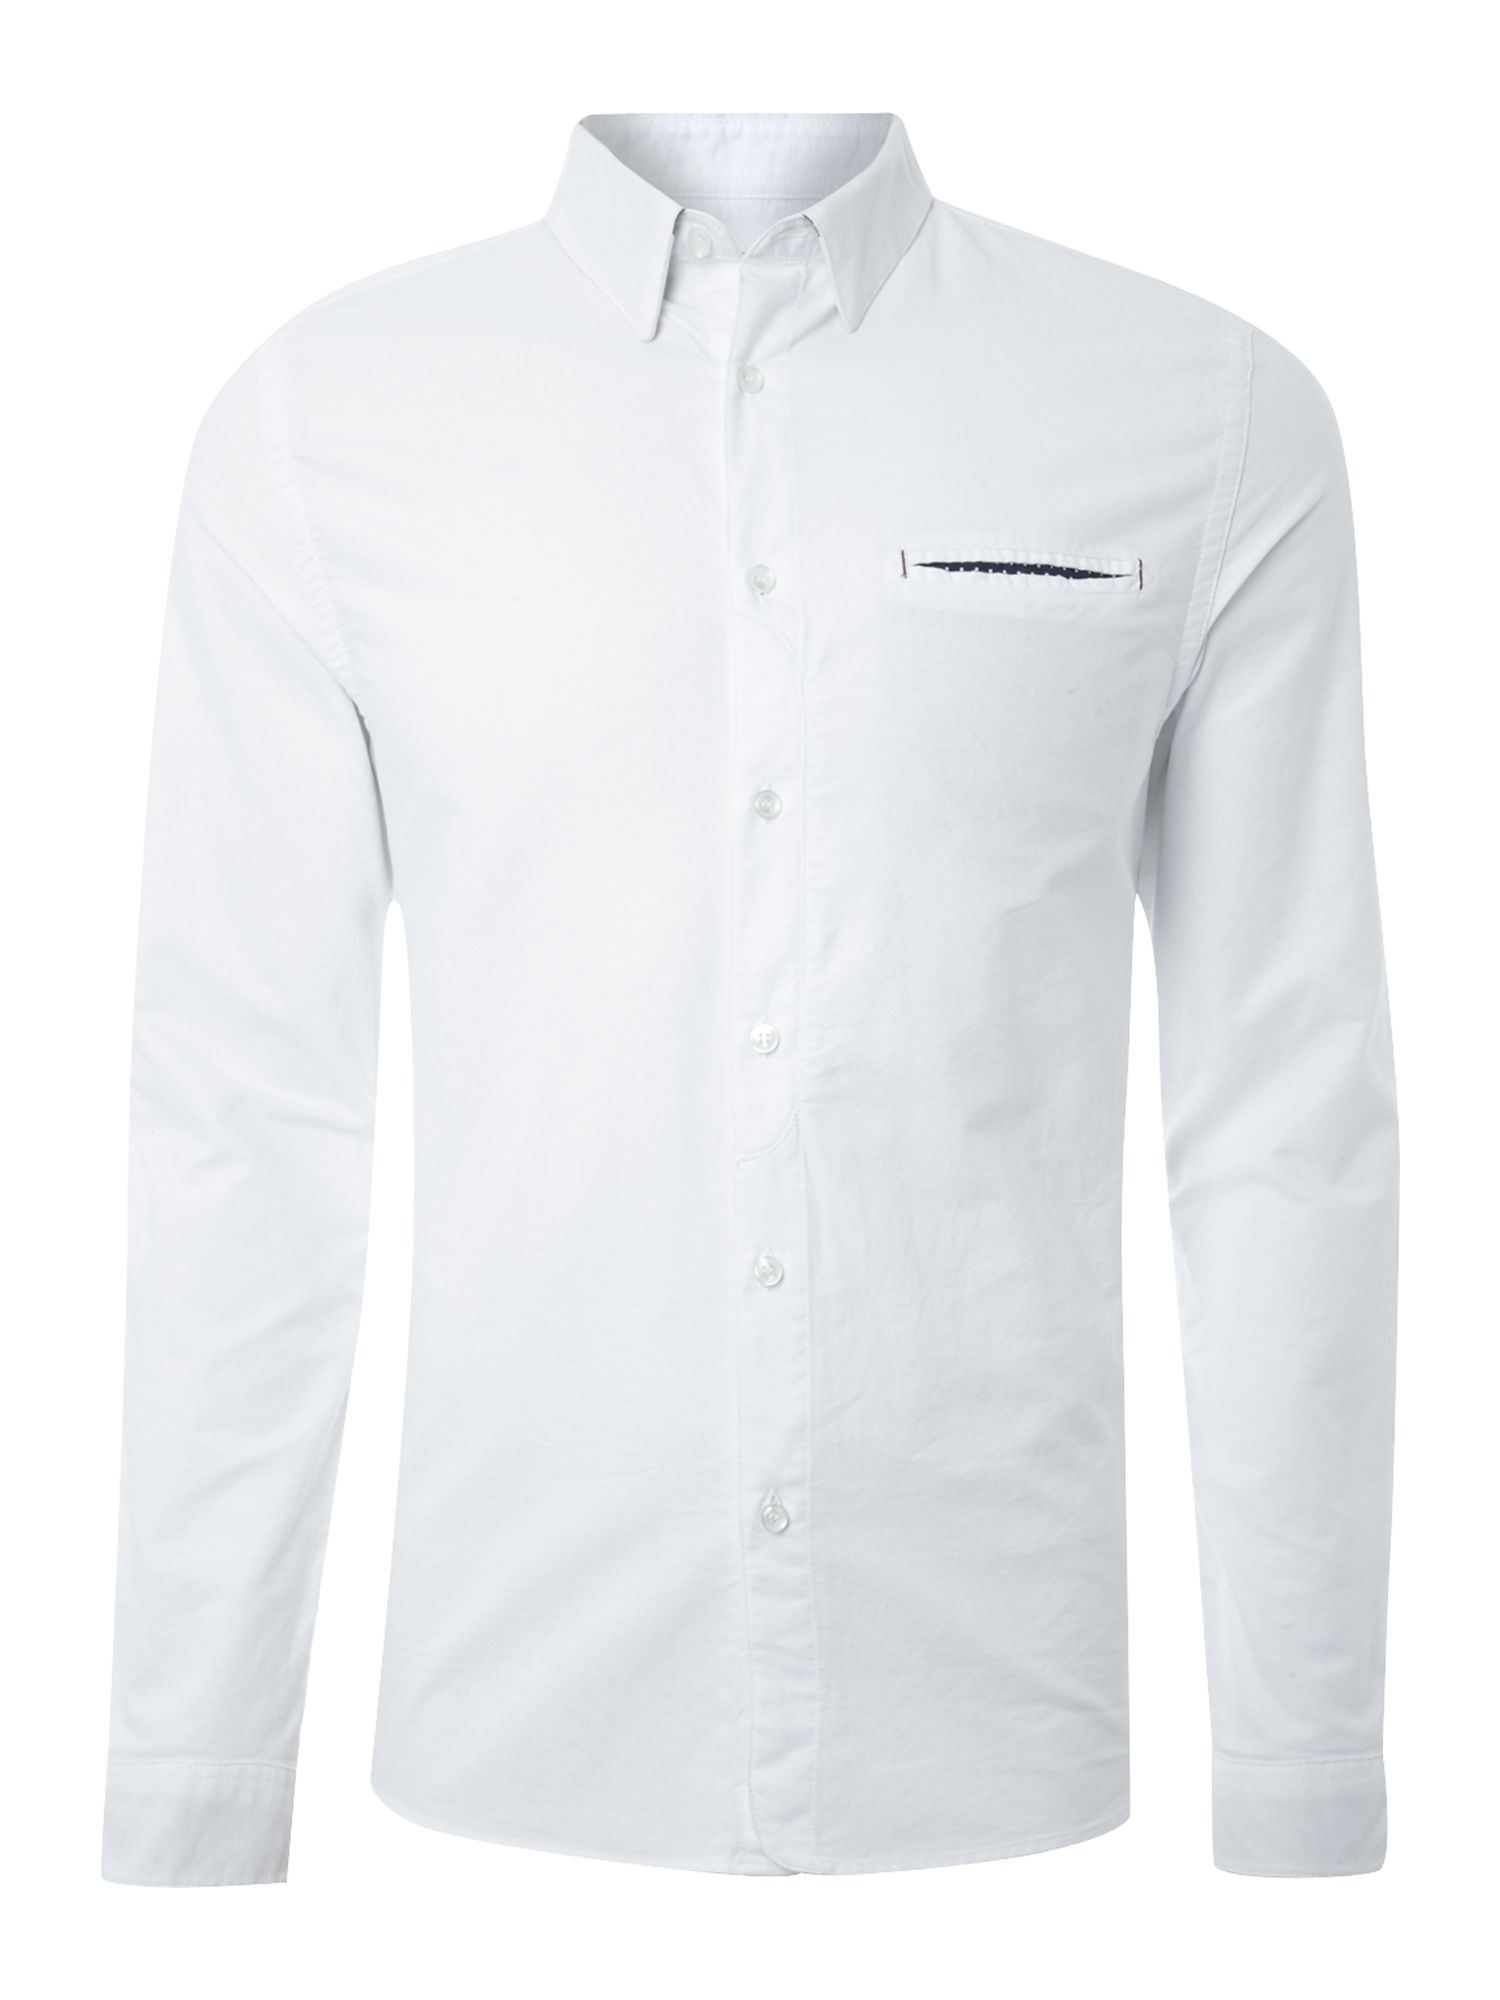 Plain hanky pocket long sleeve shirt